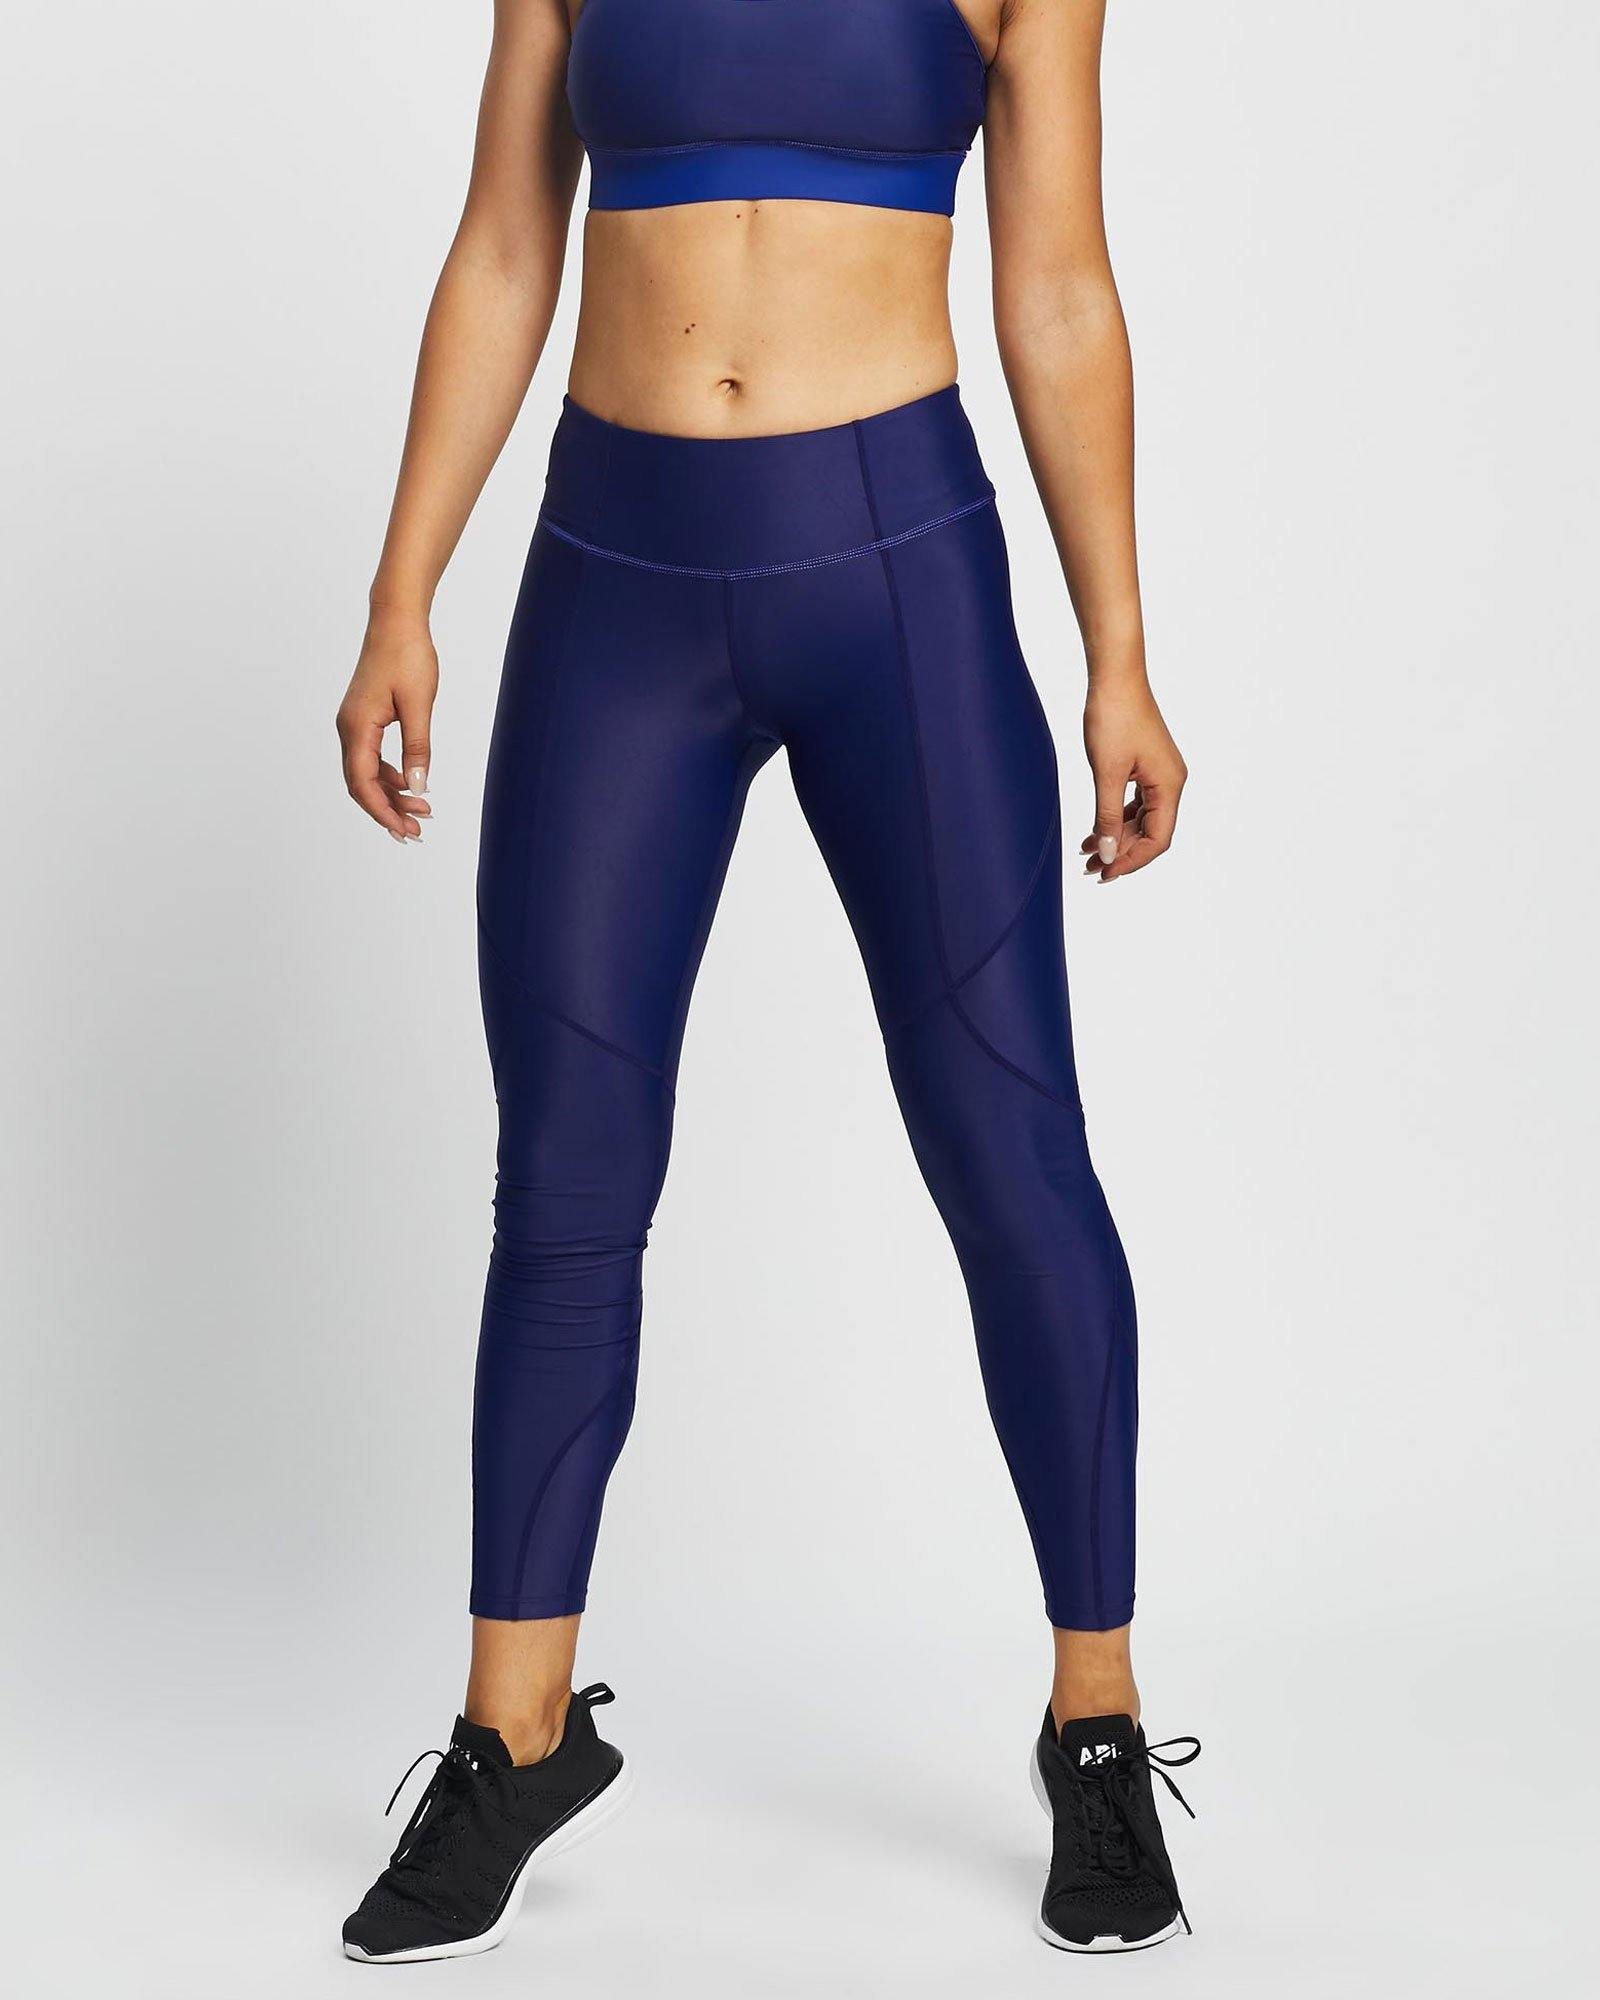 Dame Denim Vastus Mid-Waist Long Legging - More Body